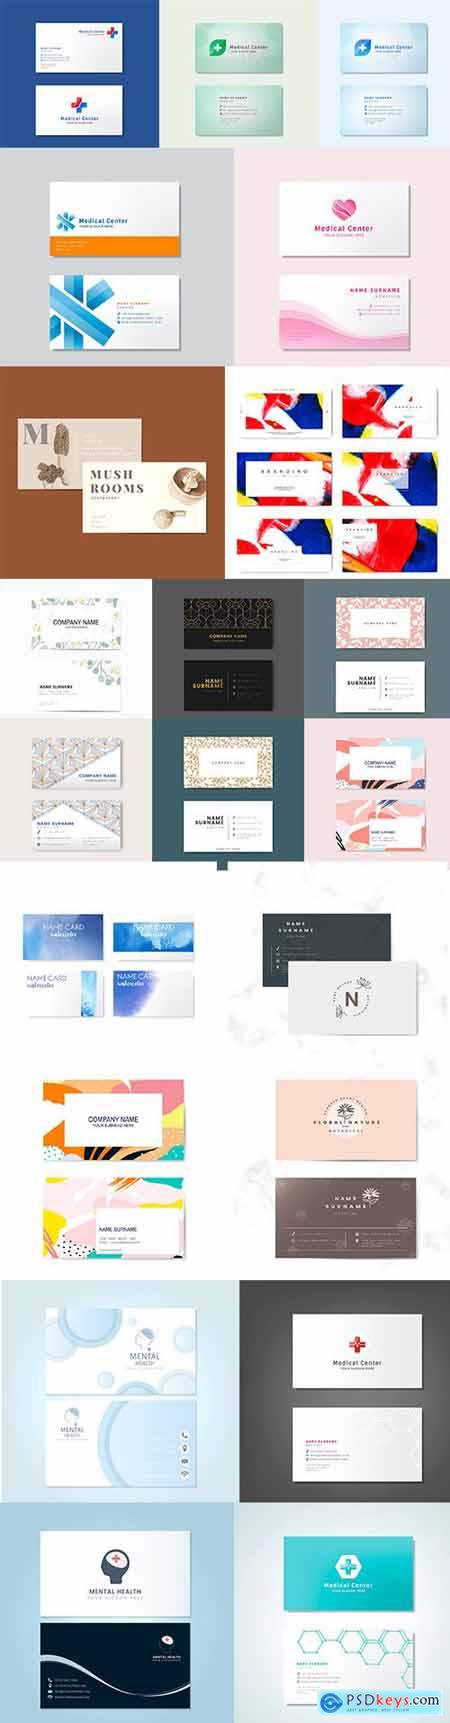 Set of Professional Business Card Templates vol7